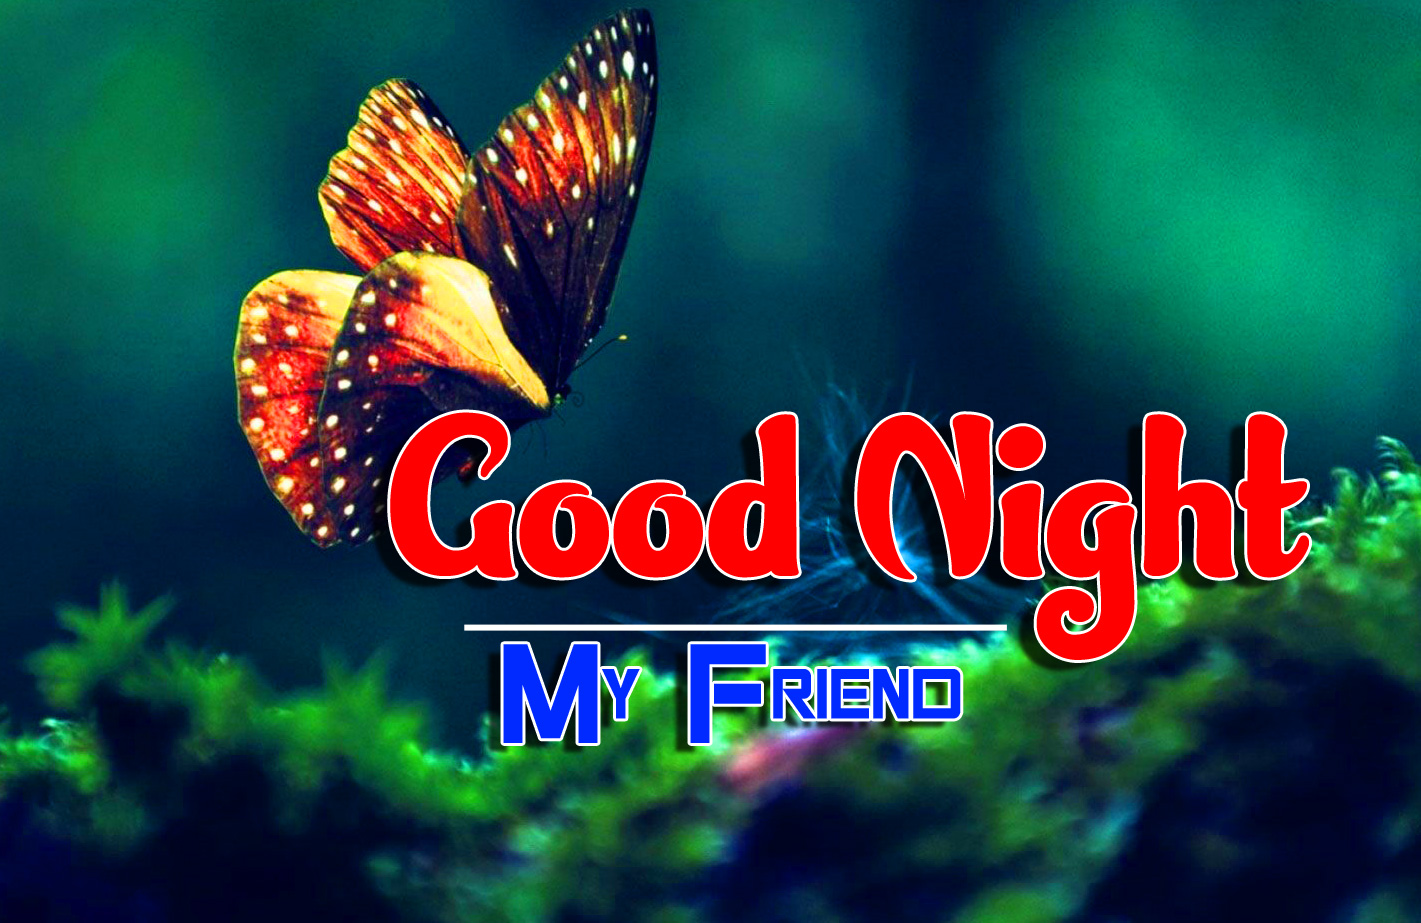 Top Good Night Images wallpaper photo download